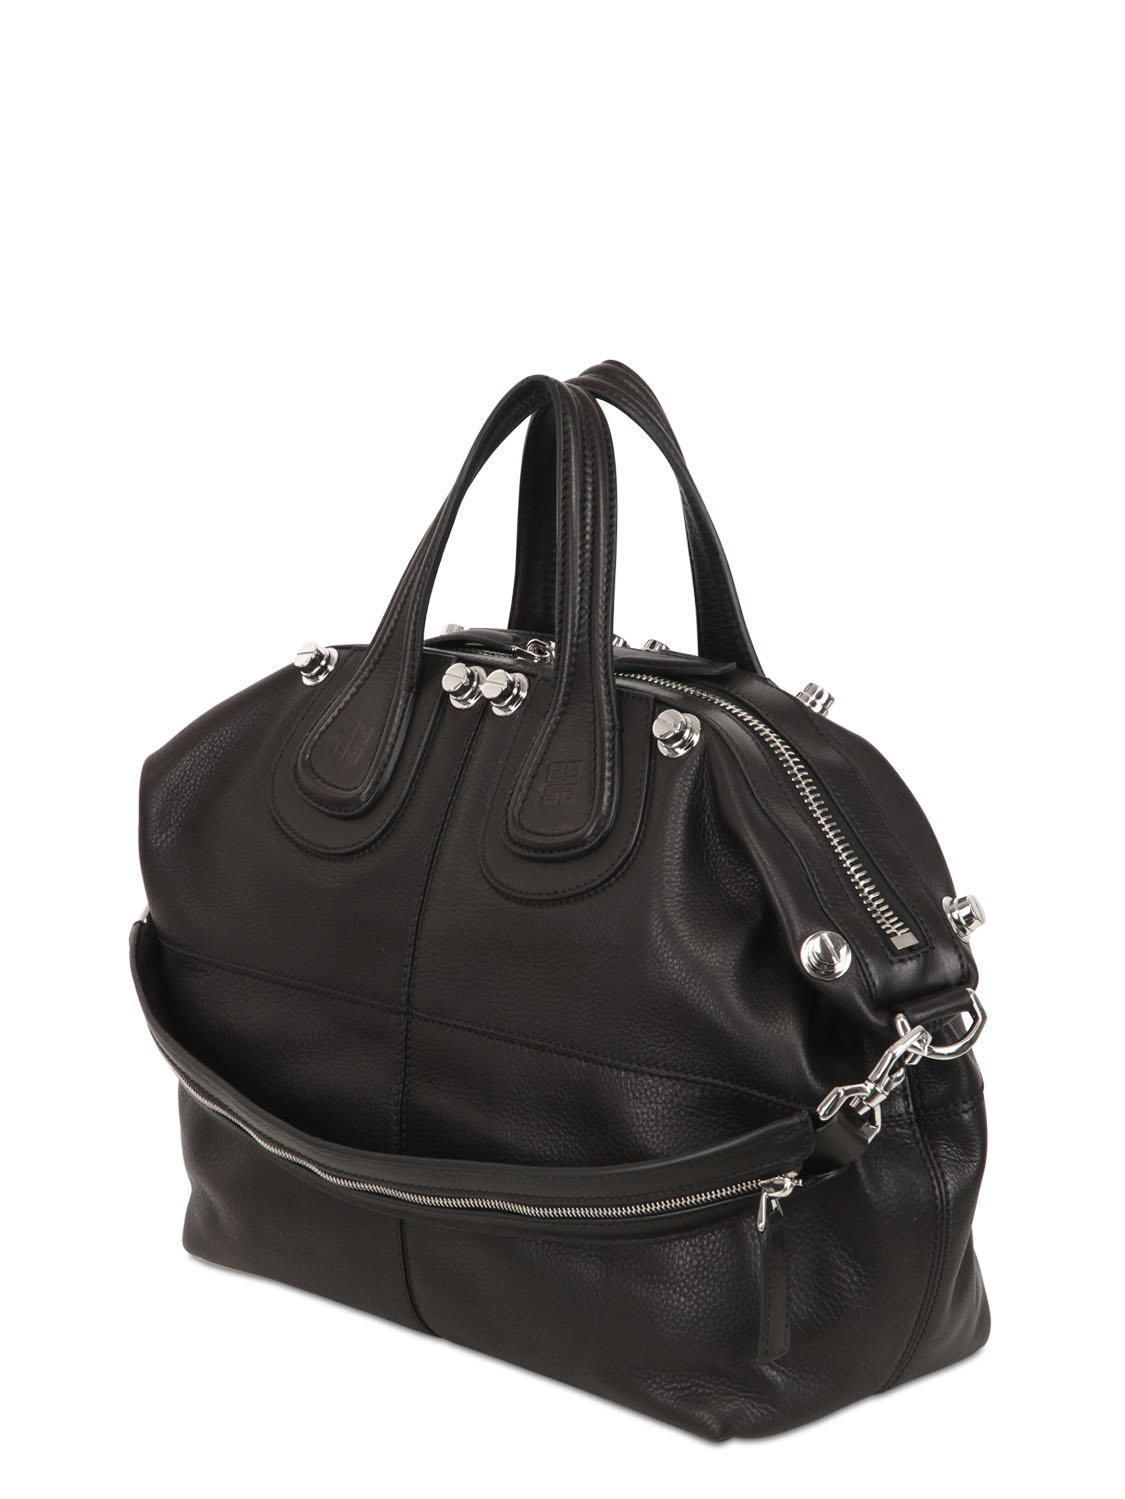 4a43591ede Lyst - Givenchy Medium Nightingale Studded Leather Bag in Black